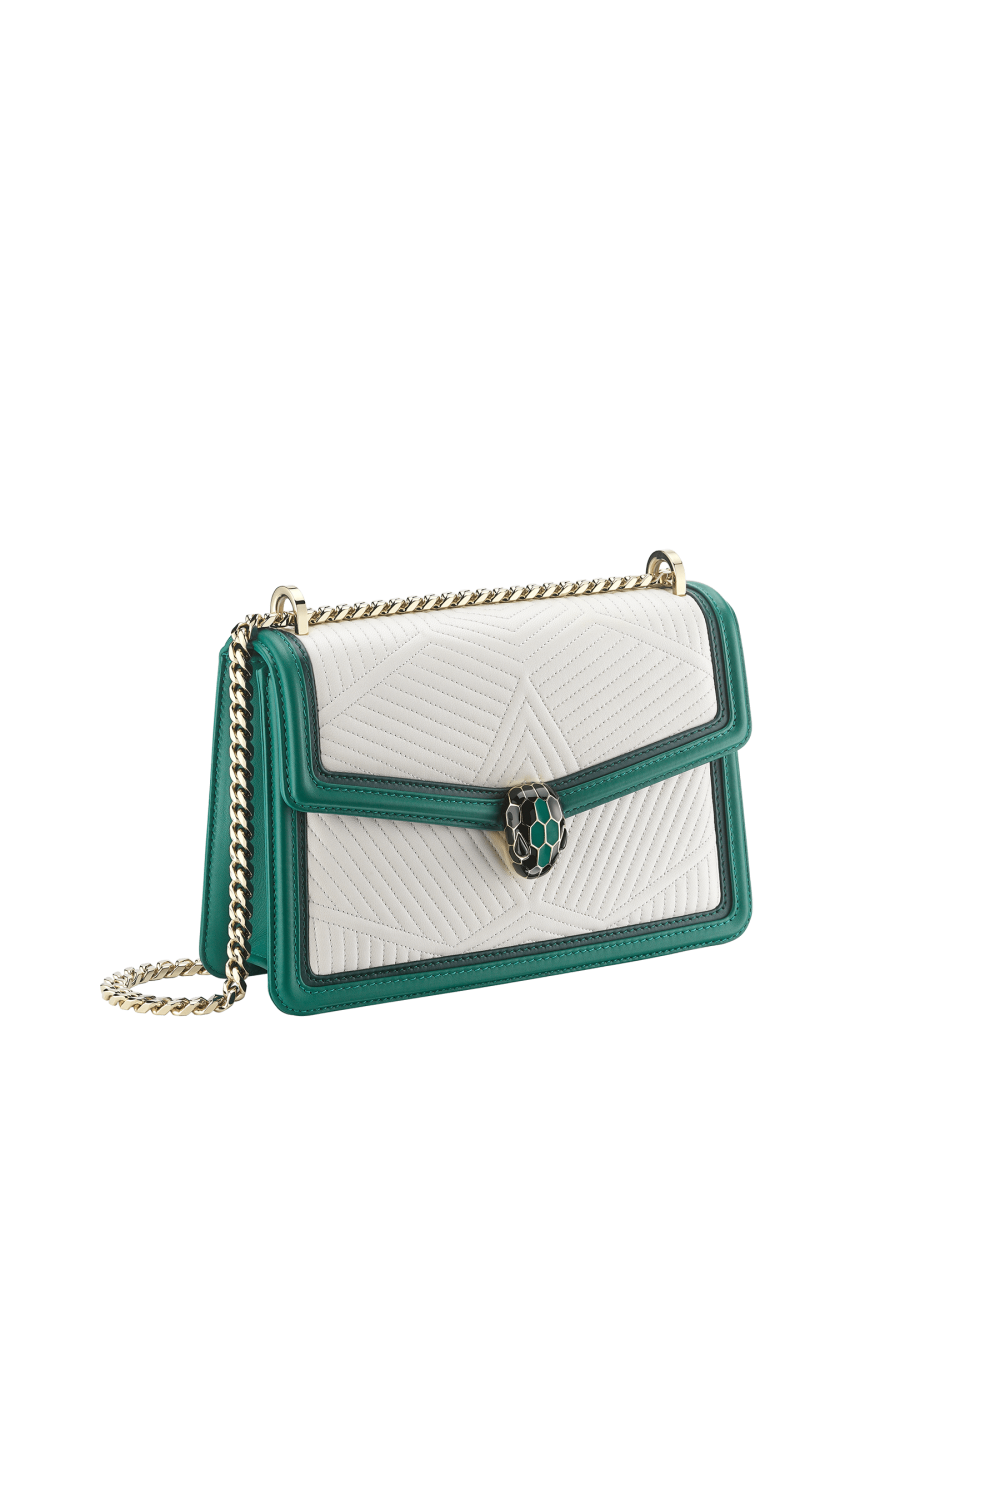 Bulgari Serpenti Diamond Blast Shoulder Bag Emerald Green